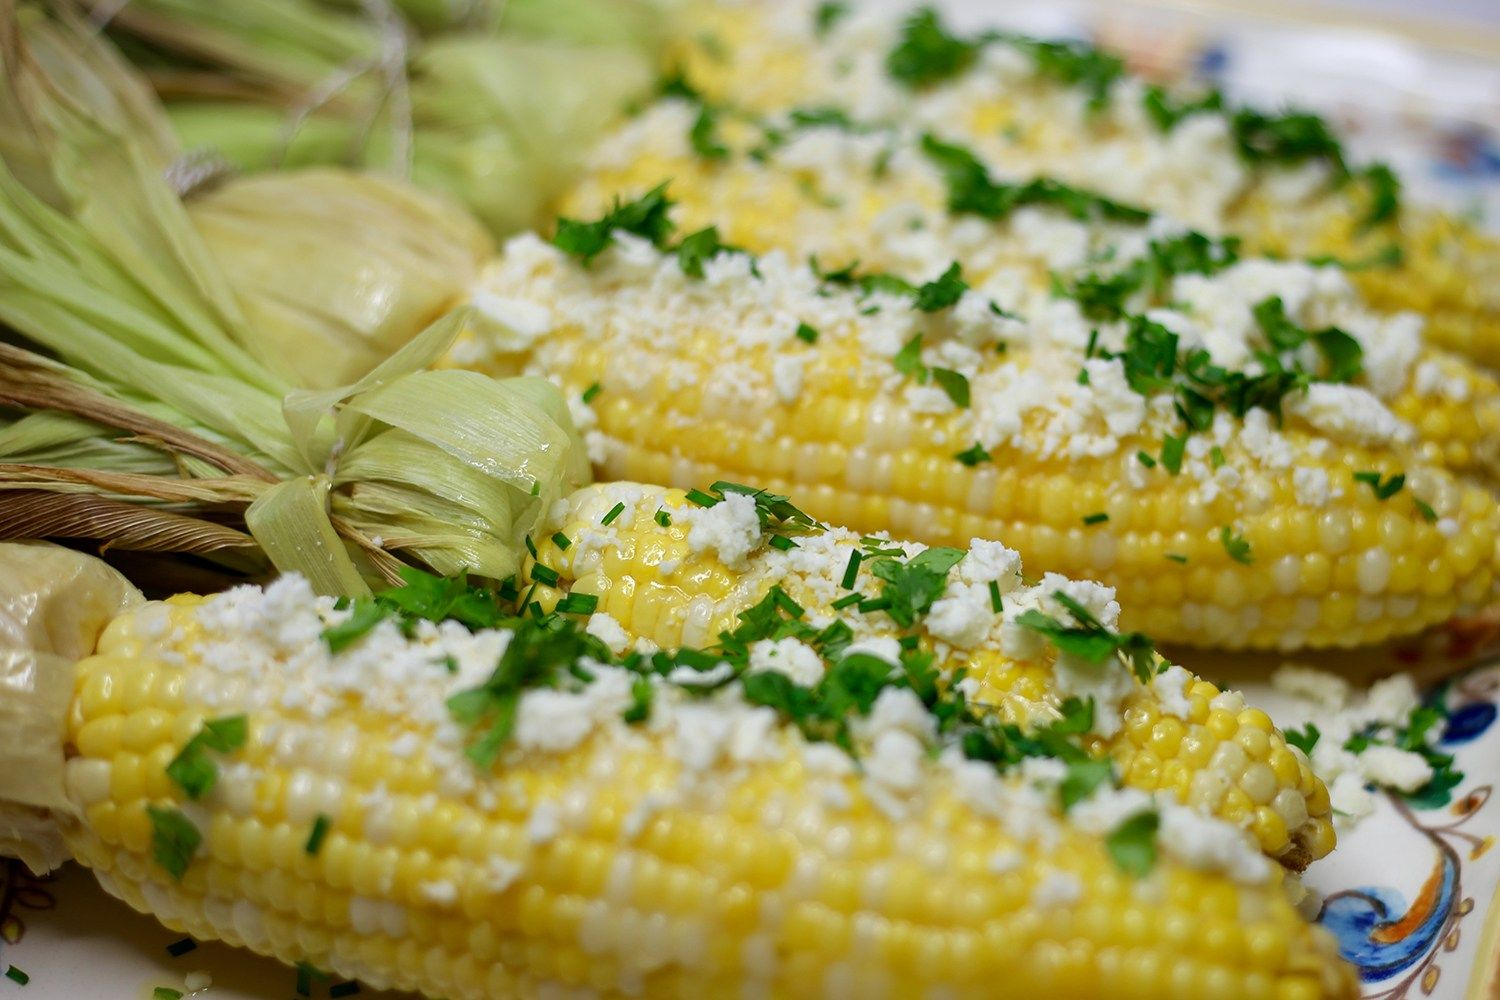 Roasted Sweet Corn - If ever there were a signature summer food, this would be it! I love this simple recipe for yummy sweet corn. artzyfoodie.com